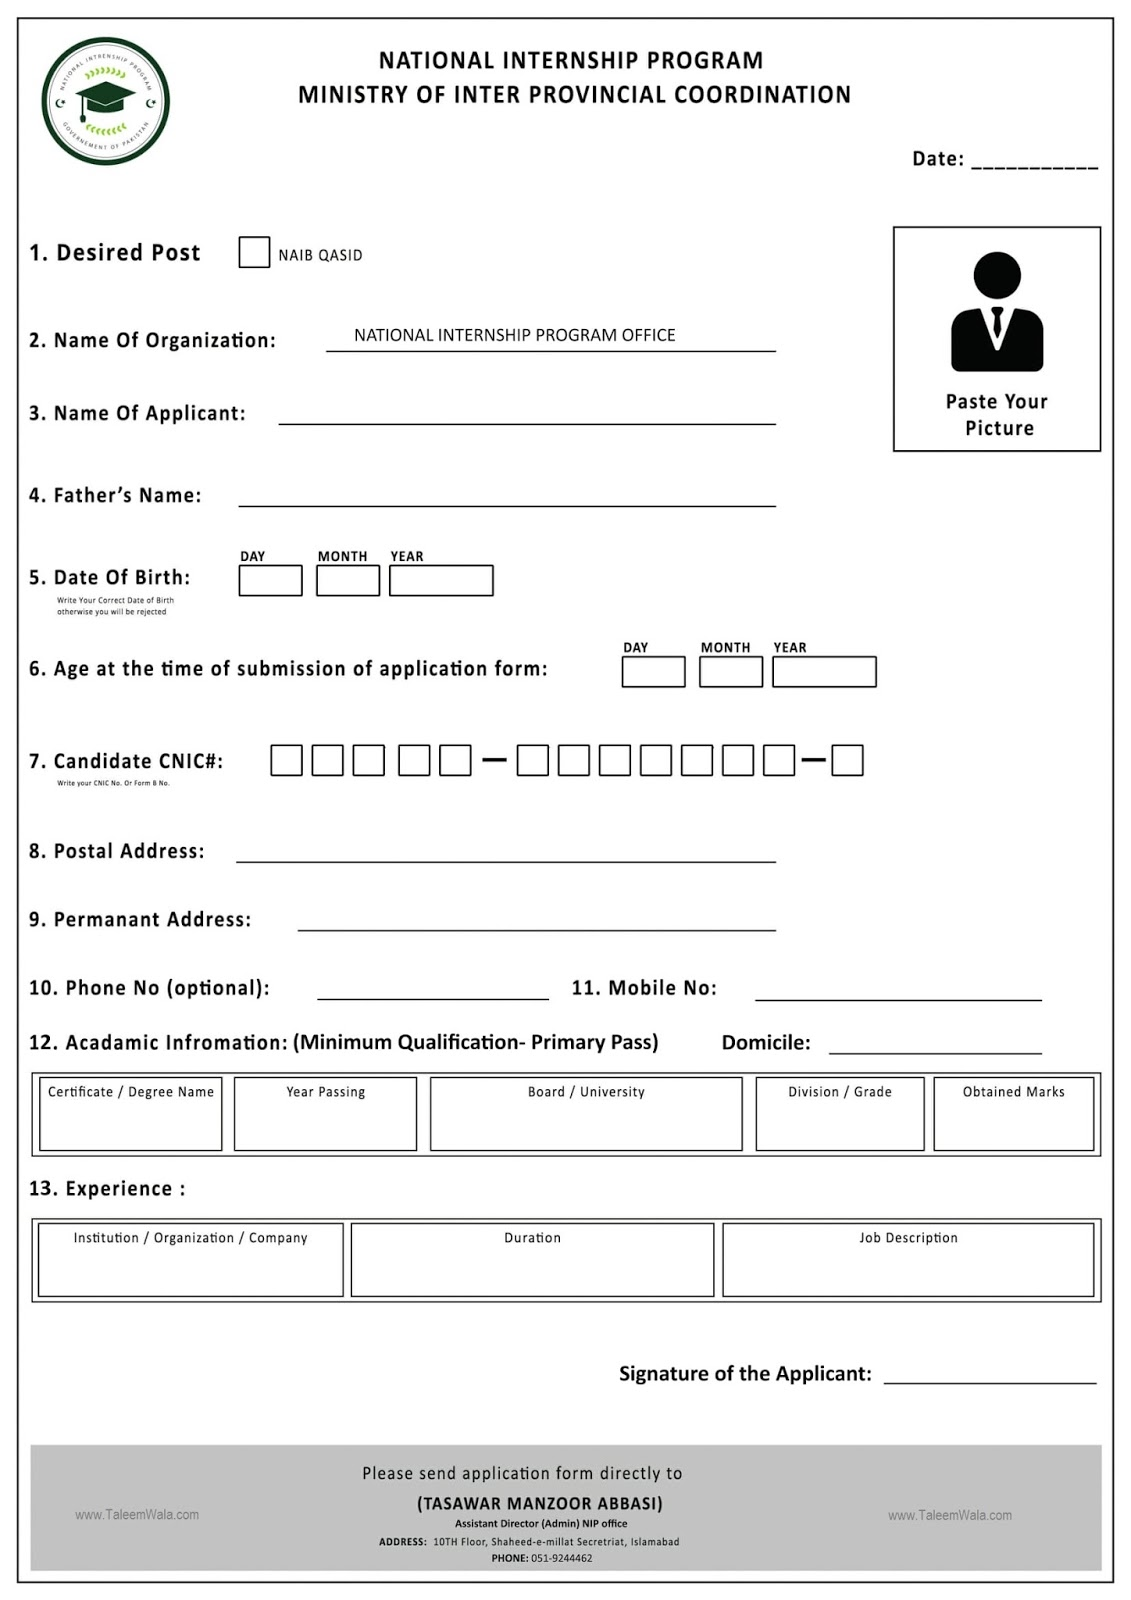 National Internship Program Job Application Form Download